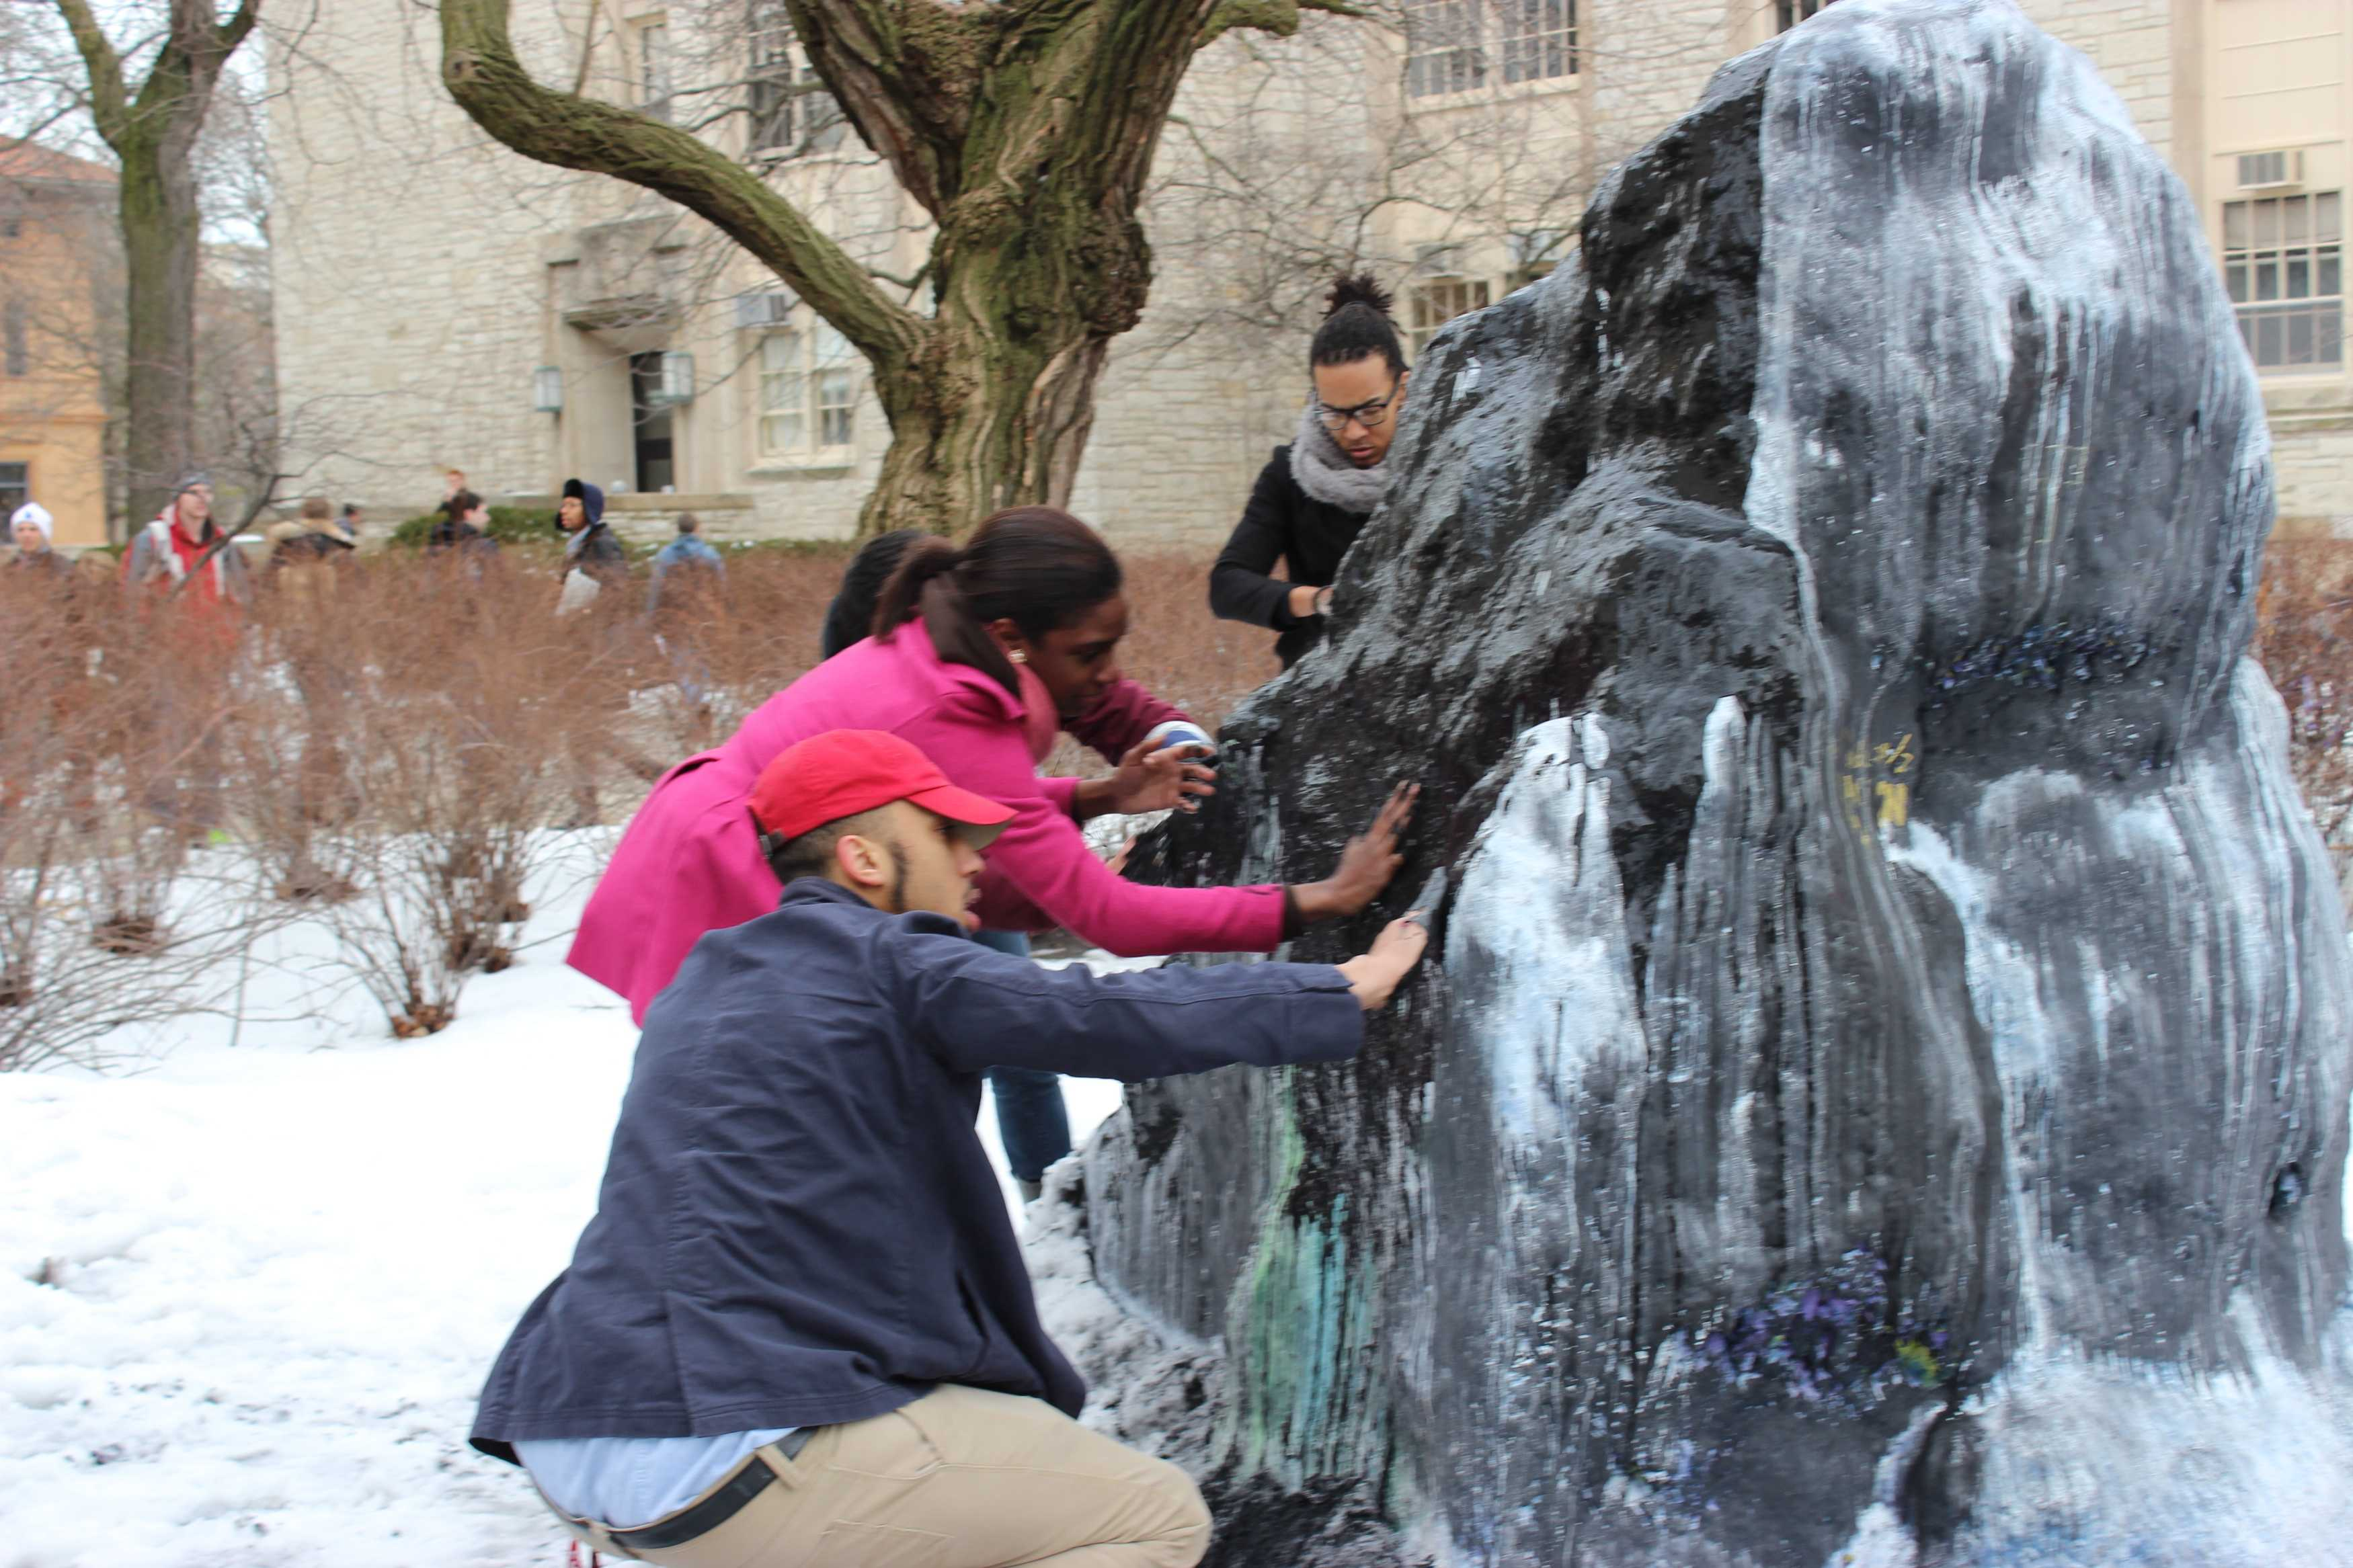 Students cover The Rock in black paint to symbolize Northwestern is a